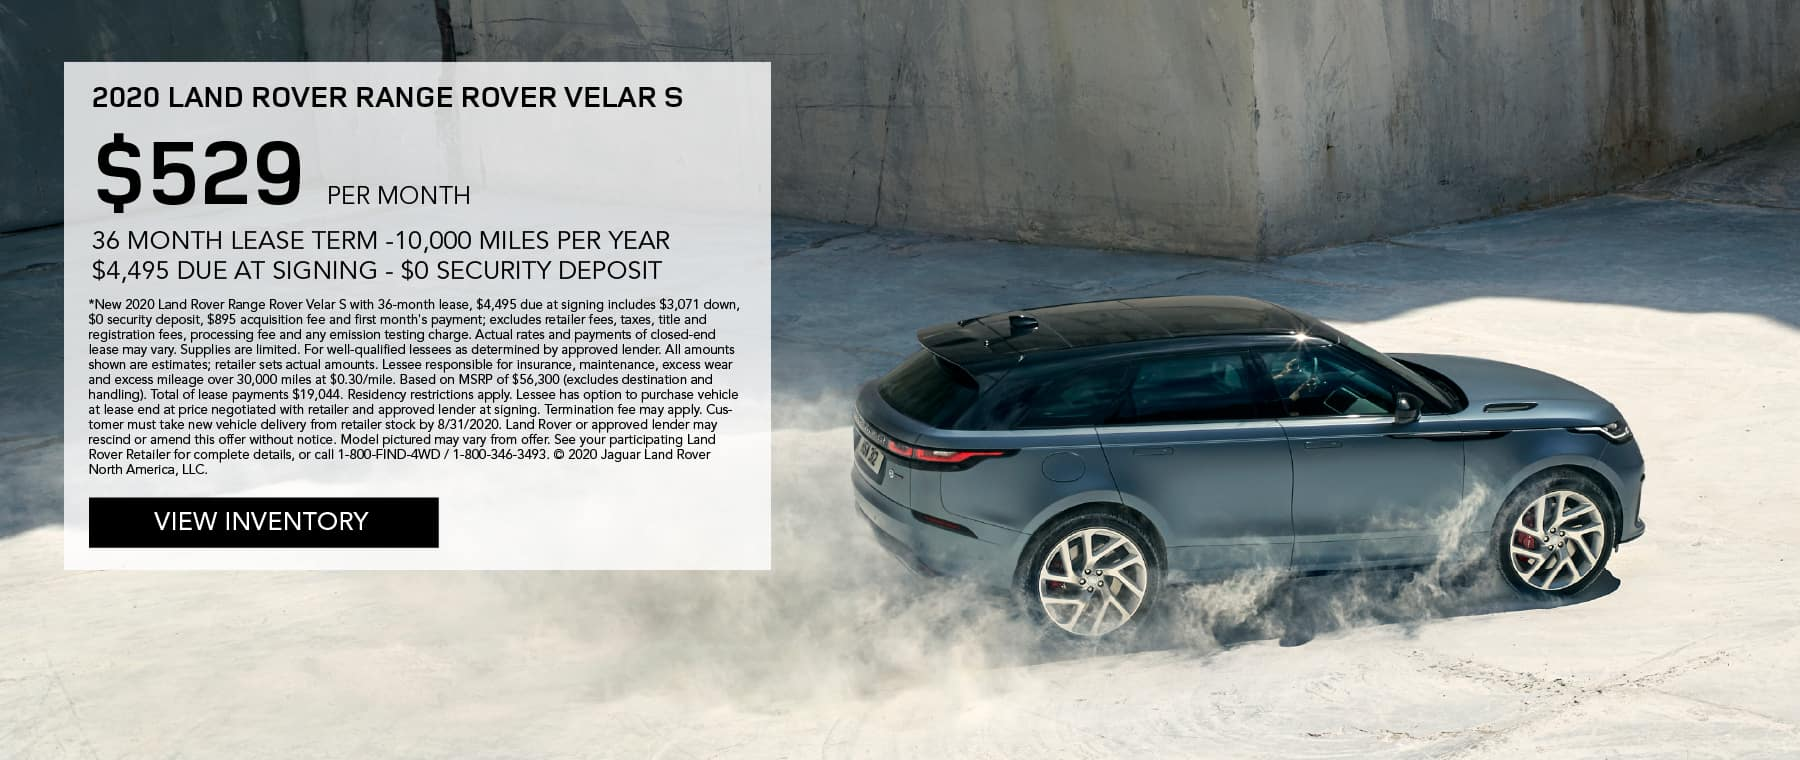 2020 RANGE ROVER VELAR S. $529 PER MONTH. 36 MONTH LEASE TERM. $4,495 CASH DUE AT SIGNING. $0 SECURITY DEPOSIT. 10,000 MILES PER YEAR. EXCLUDES RETAILER FEES, TAXES, TITLE AND REGISTRATION FEES, PROCESSING FEE AND ANY EMISSION TESTING CHARGE. ENDS 8/31/2020. VIEW INVENTORY. BLUE RANGE ROVER VELAR DRIVING DOWN DIRT ROAD.